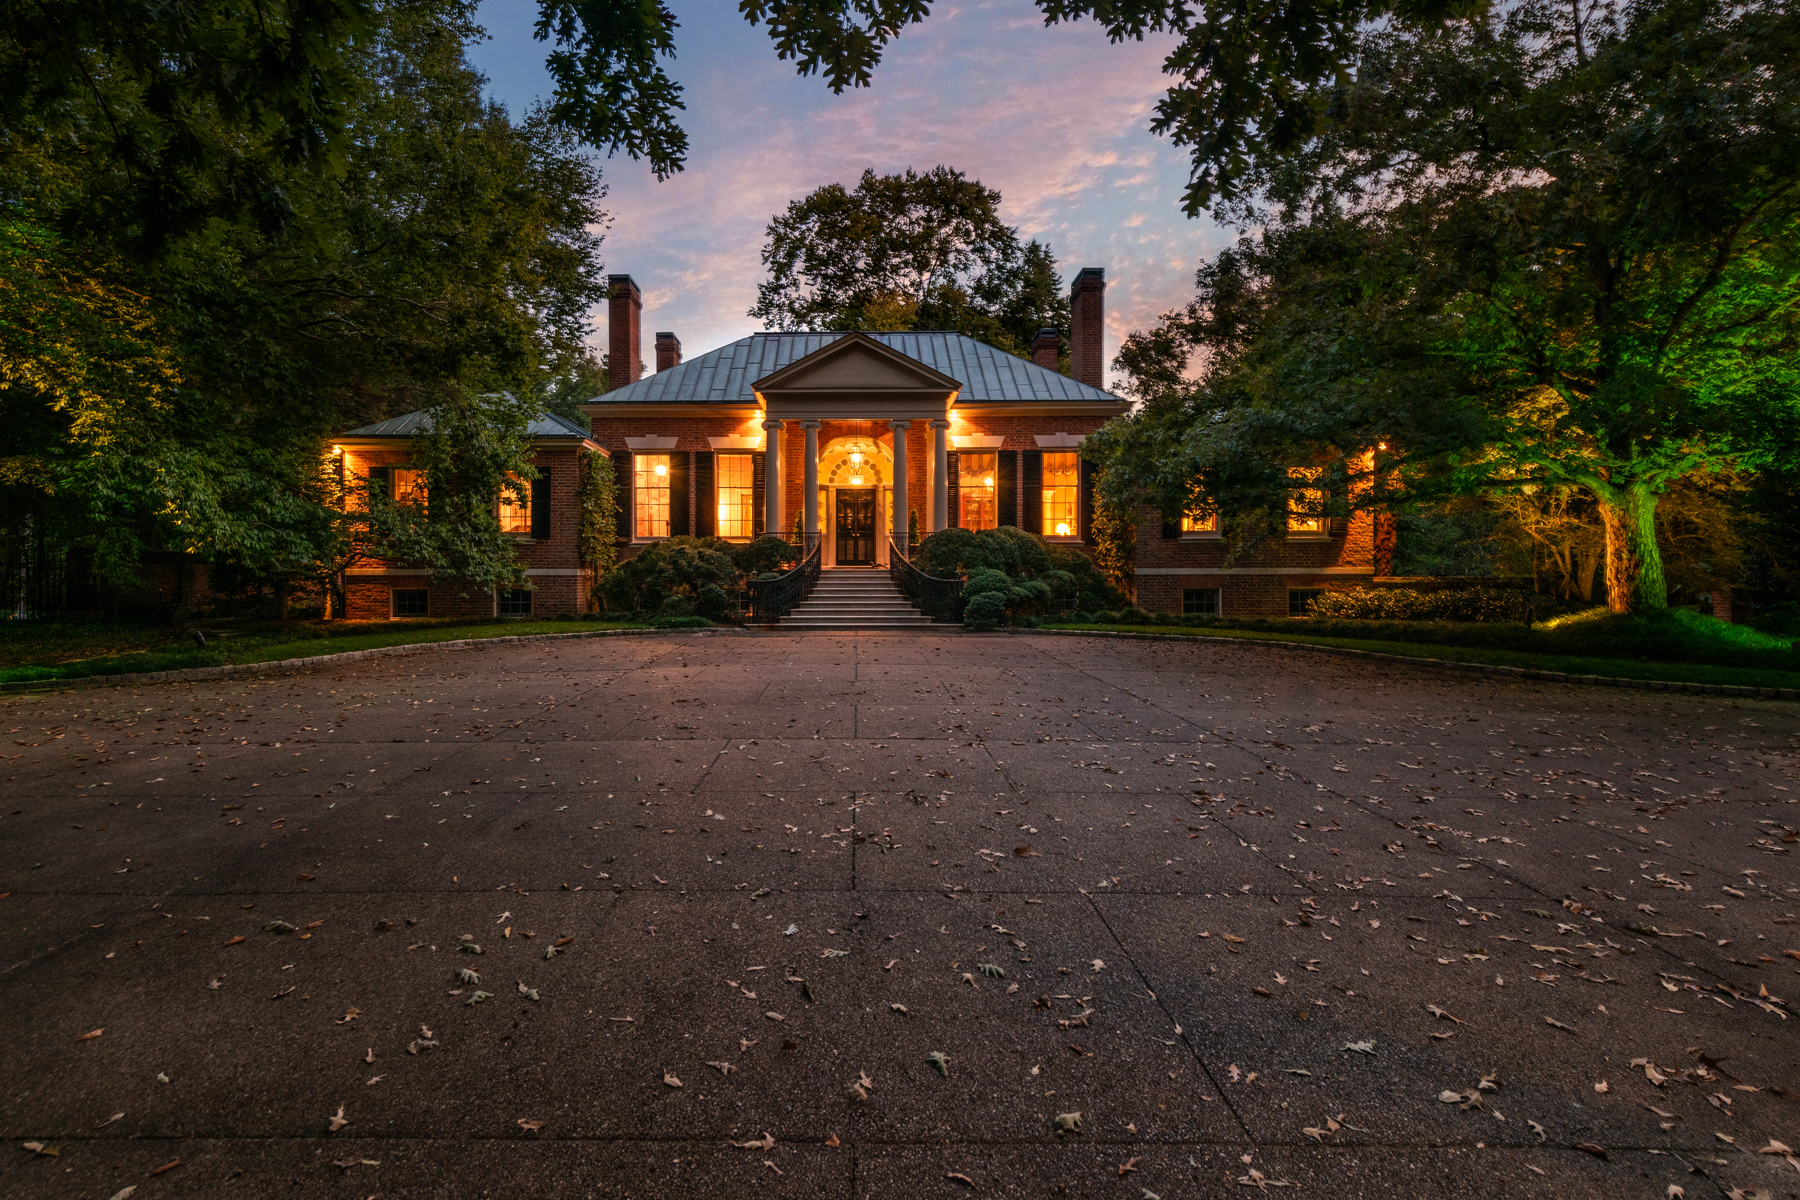 Single Family Home for Sale at One Of The Most Beautiful Estates In Atlanta 390 W Paces Ferry Road NW Atlanta, Georgia 30305 United States